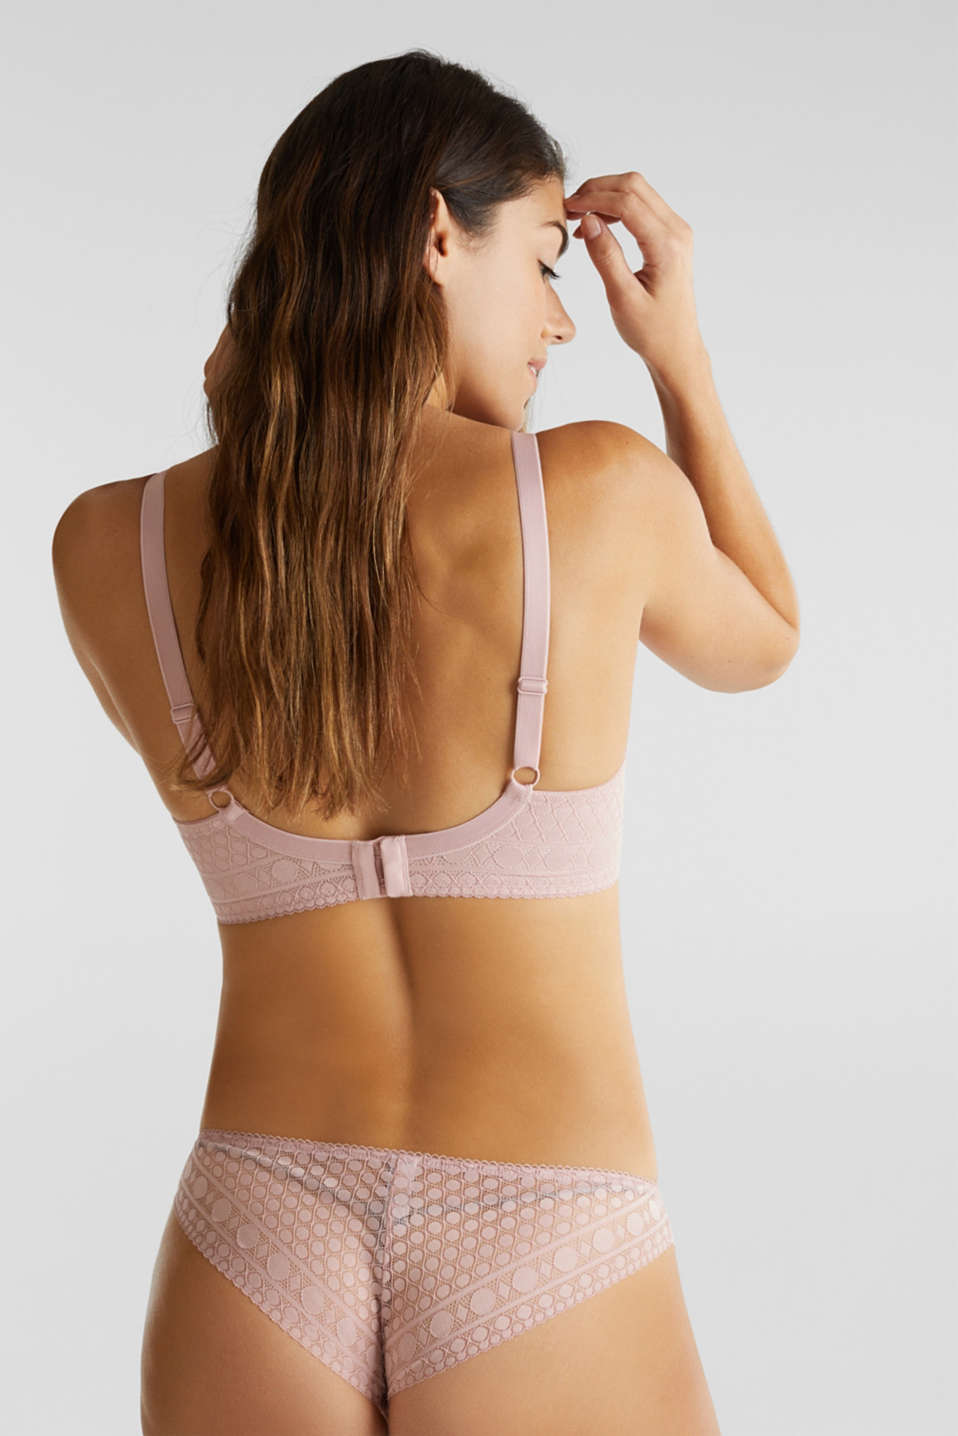 Padded, underwire bra for large cup sizes, OLD PINK, detail image number 1